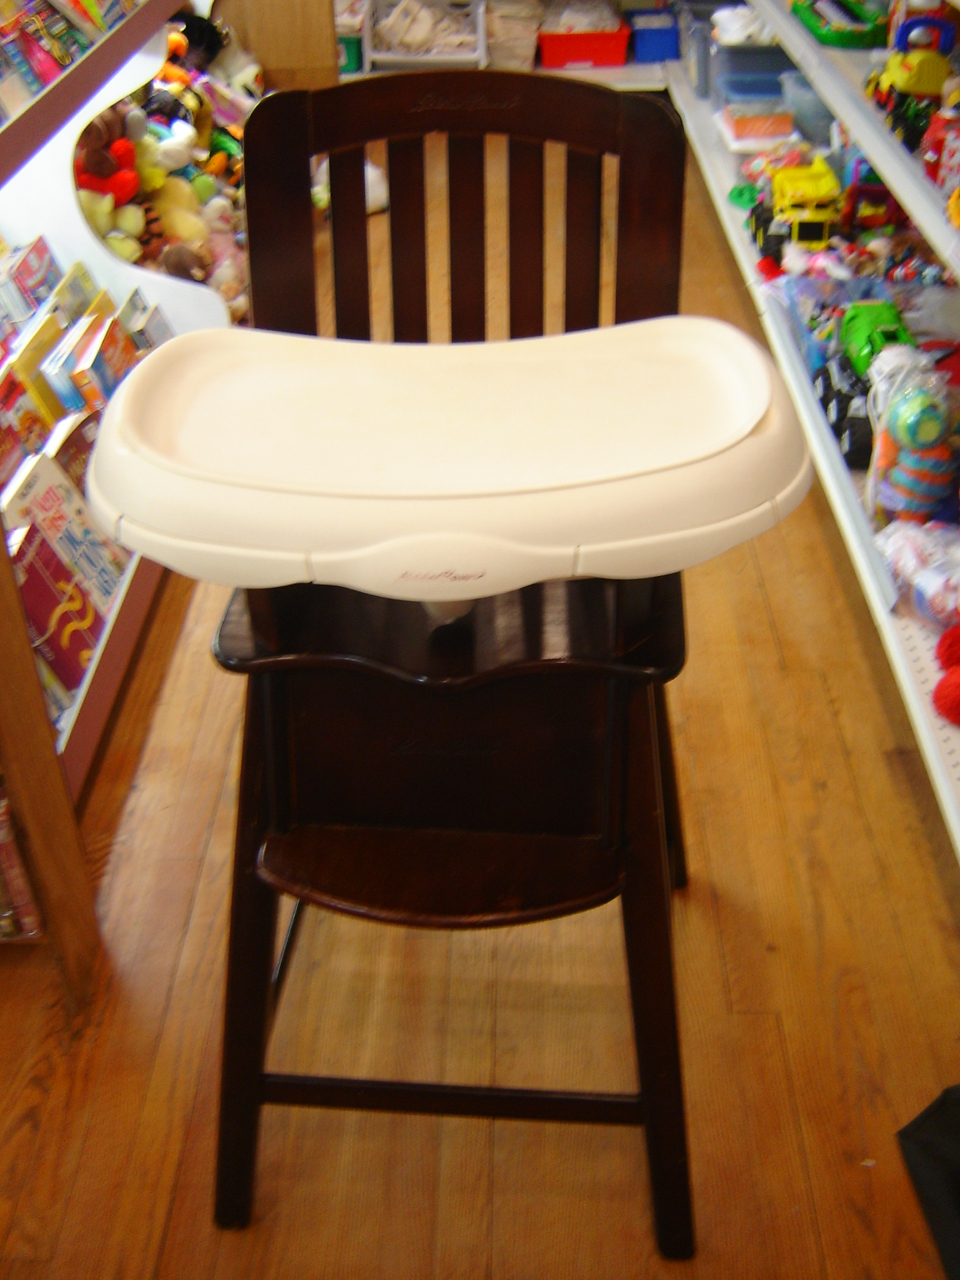 Eddie Bauer Wooden High Chair with Tray  eBay